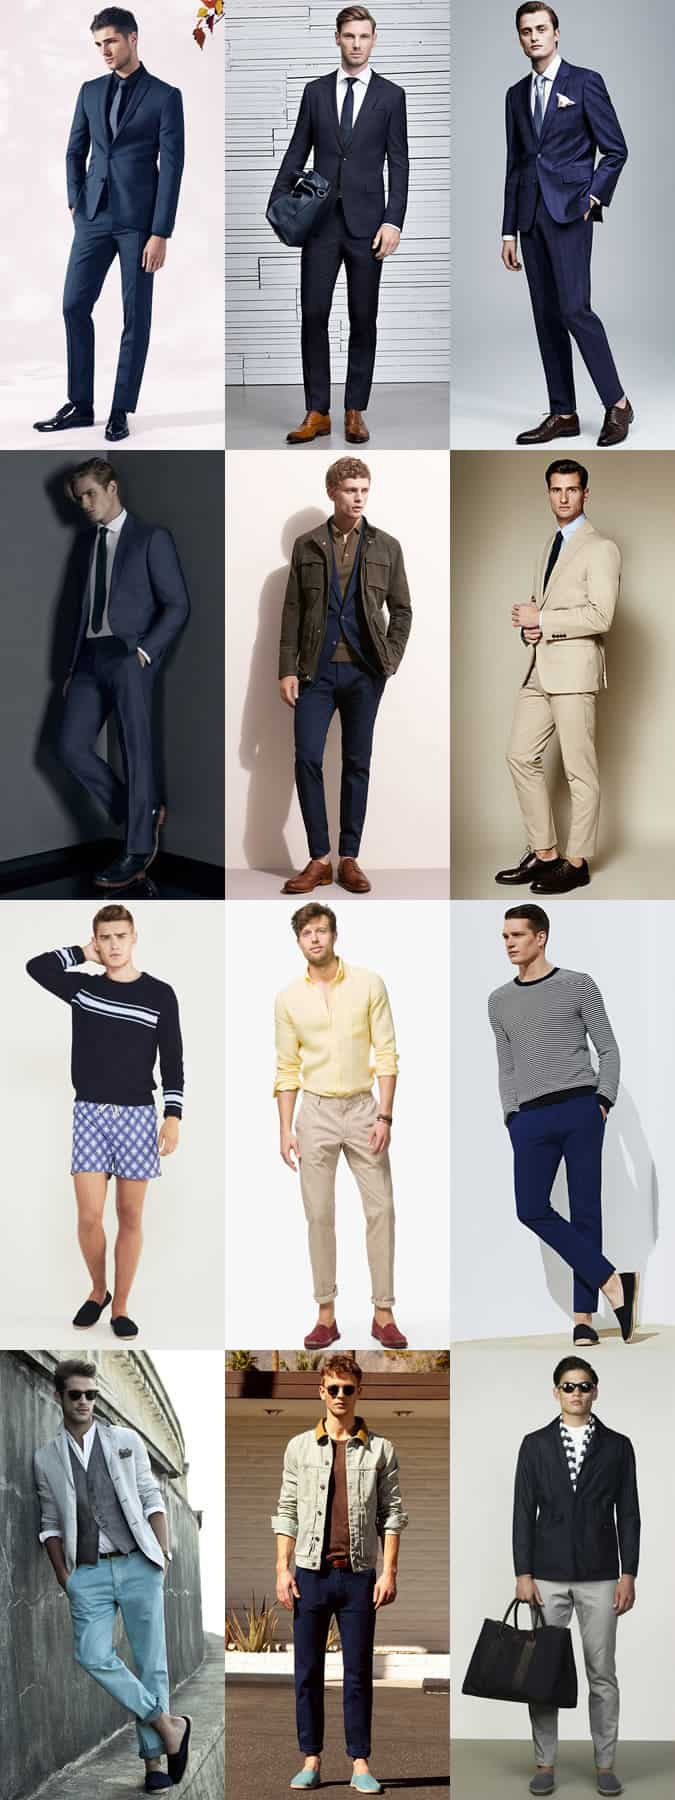 Men's Smart Leather Brogues, Oxfords and Derbies with Suits / Plus Espadrilles In Summer Outfits